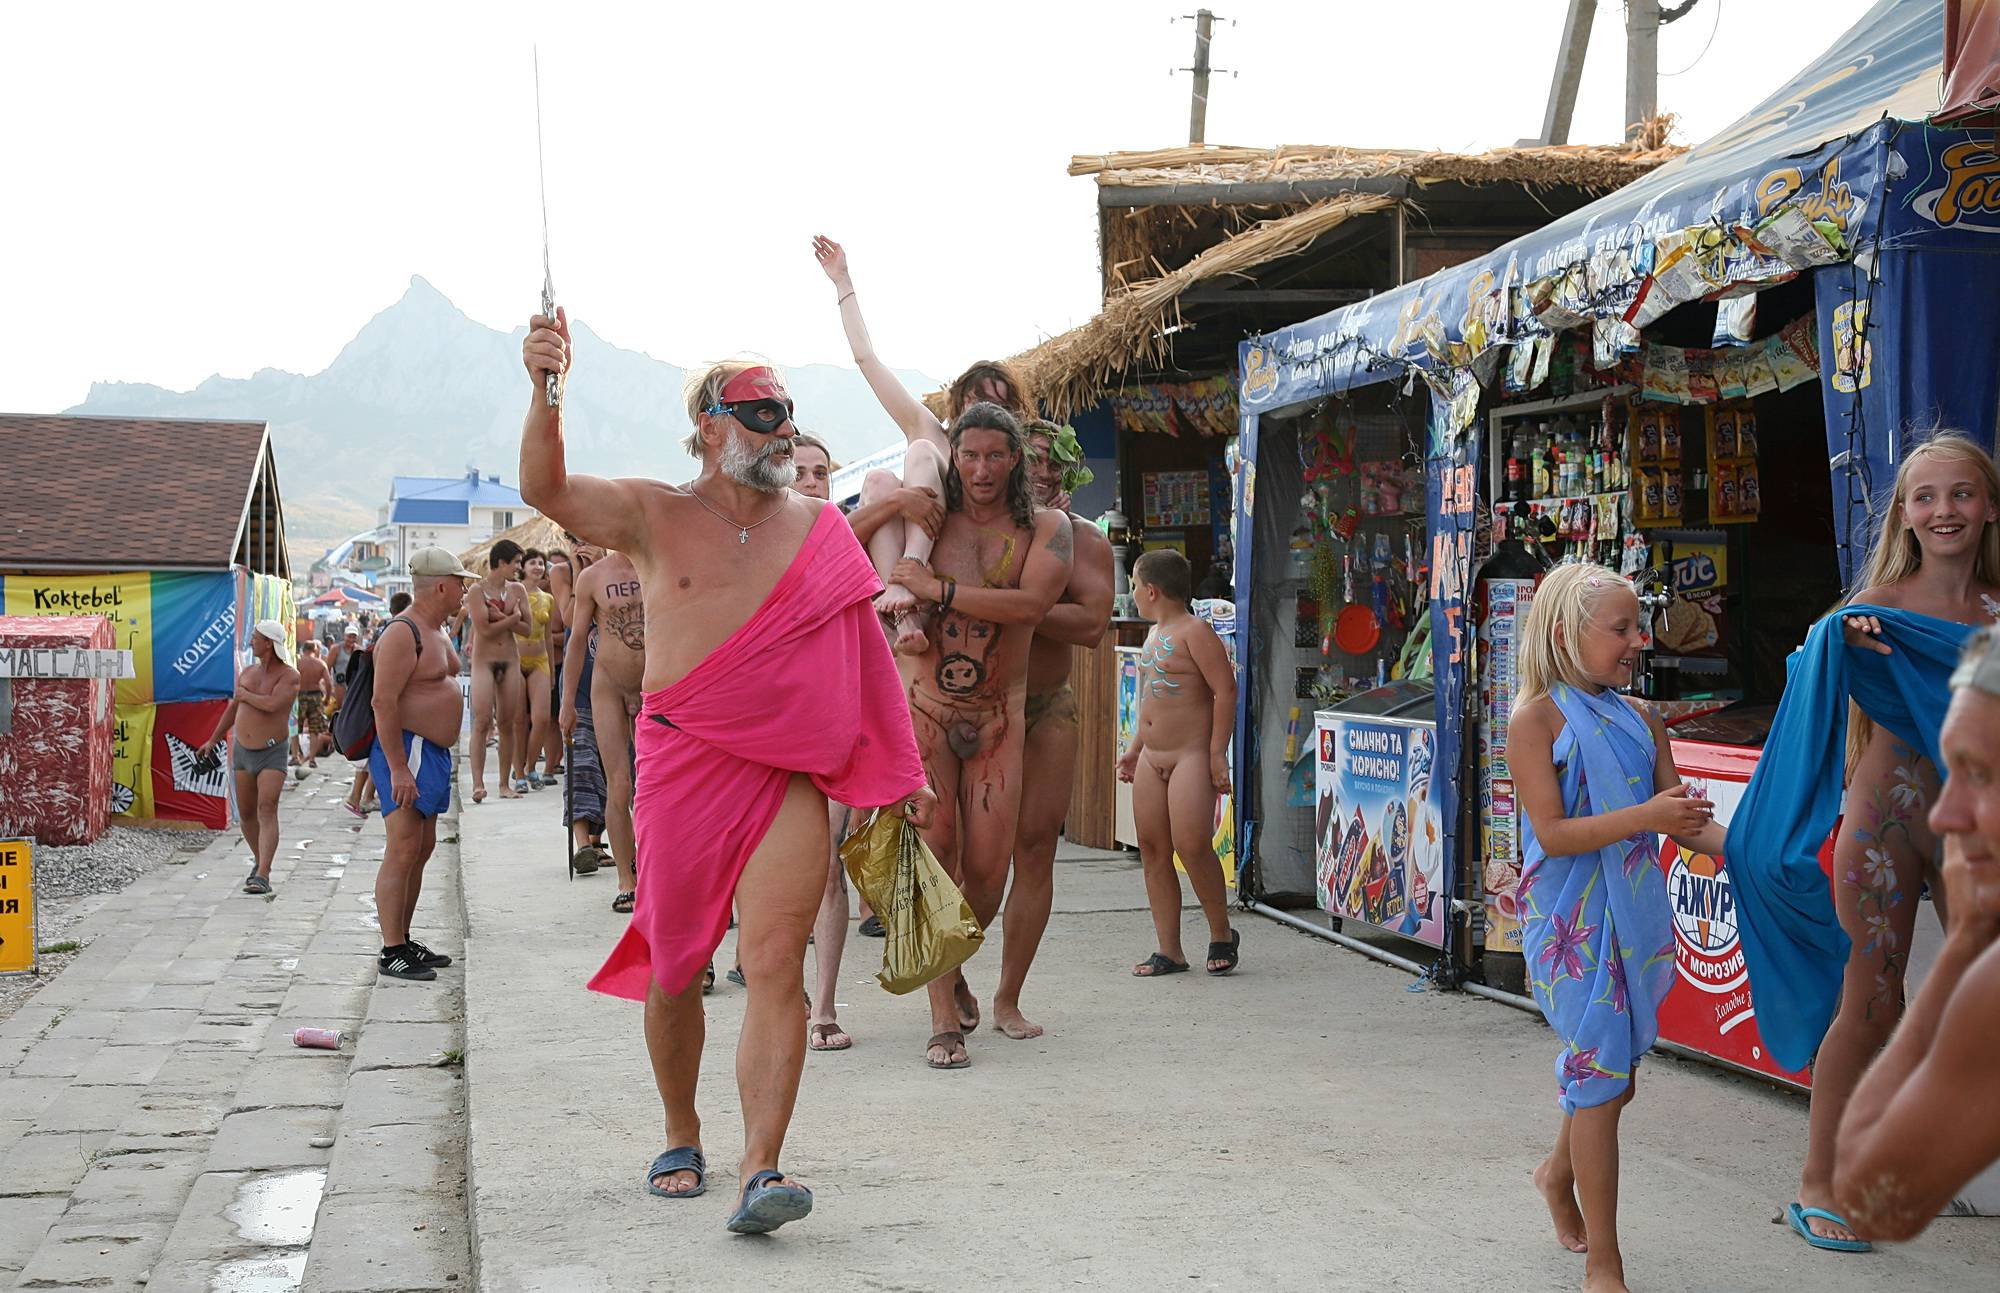 Nudist Gallery Marching Down The Street - 2